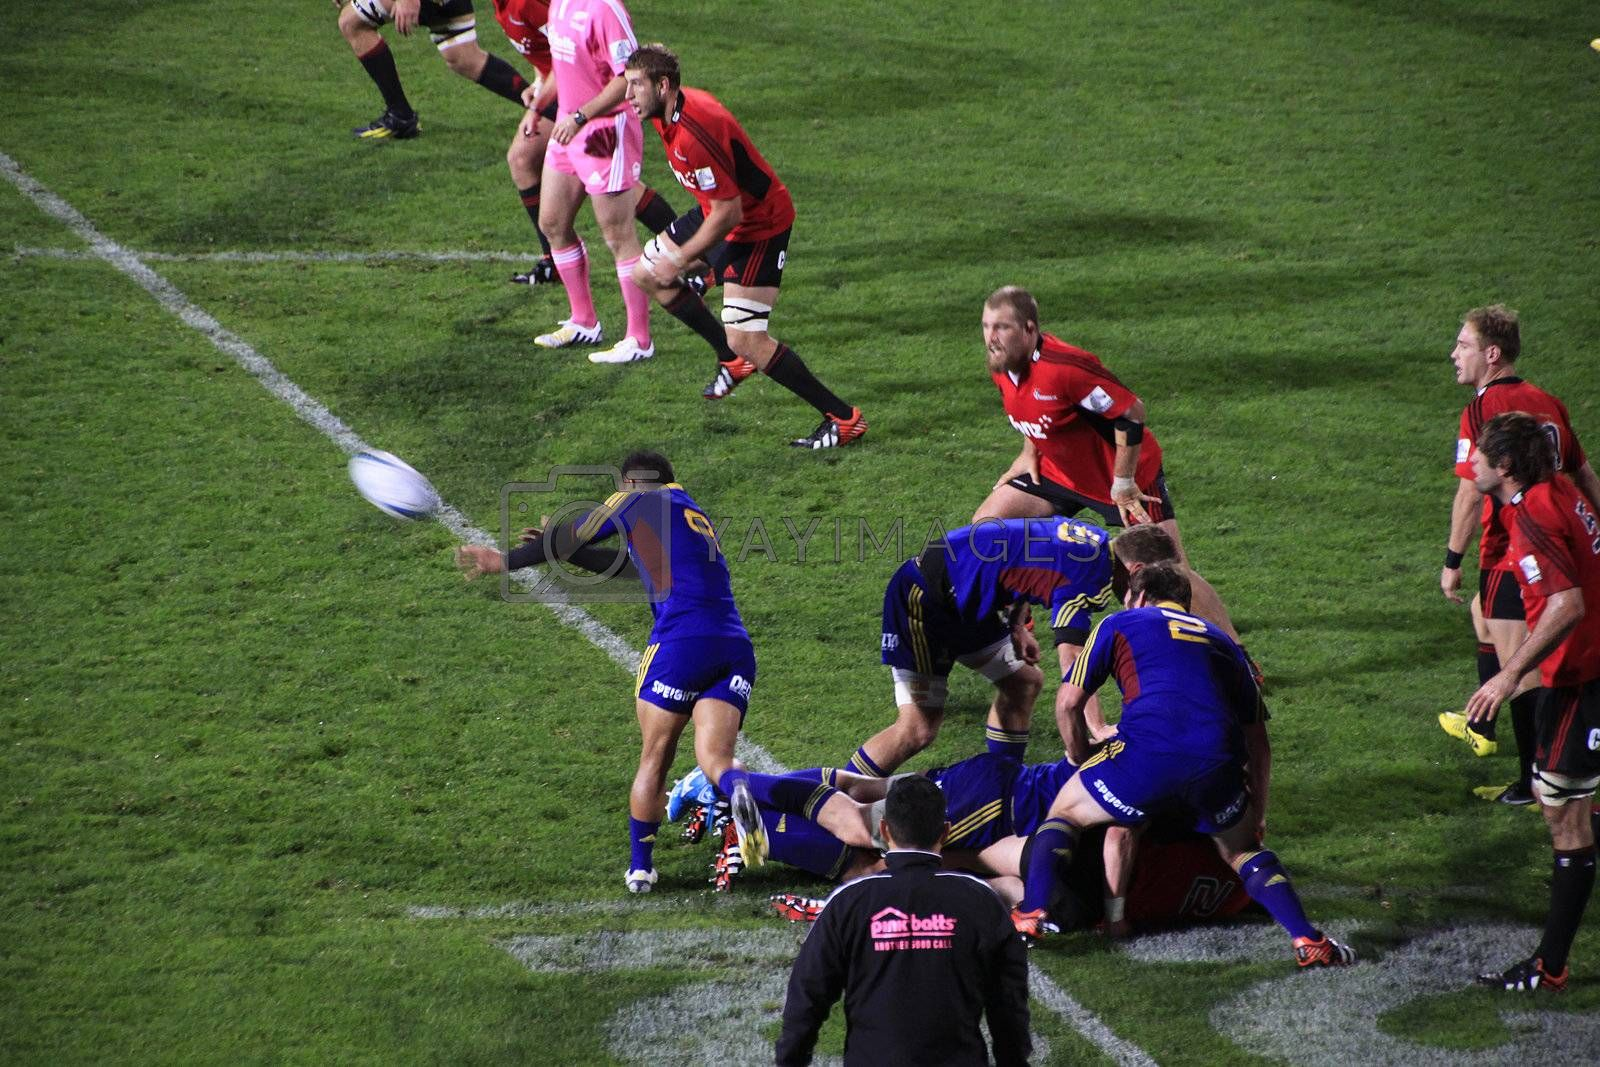 CHRISTCHURCH-April 20: Super Rugby  match between Canterbury Crusaders and Otago Highlanders held at the AMI Rugby Stadium in Christchurch, New Zealand on Saturday April 20, 2013.